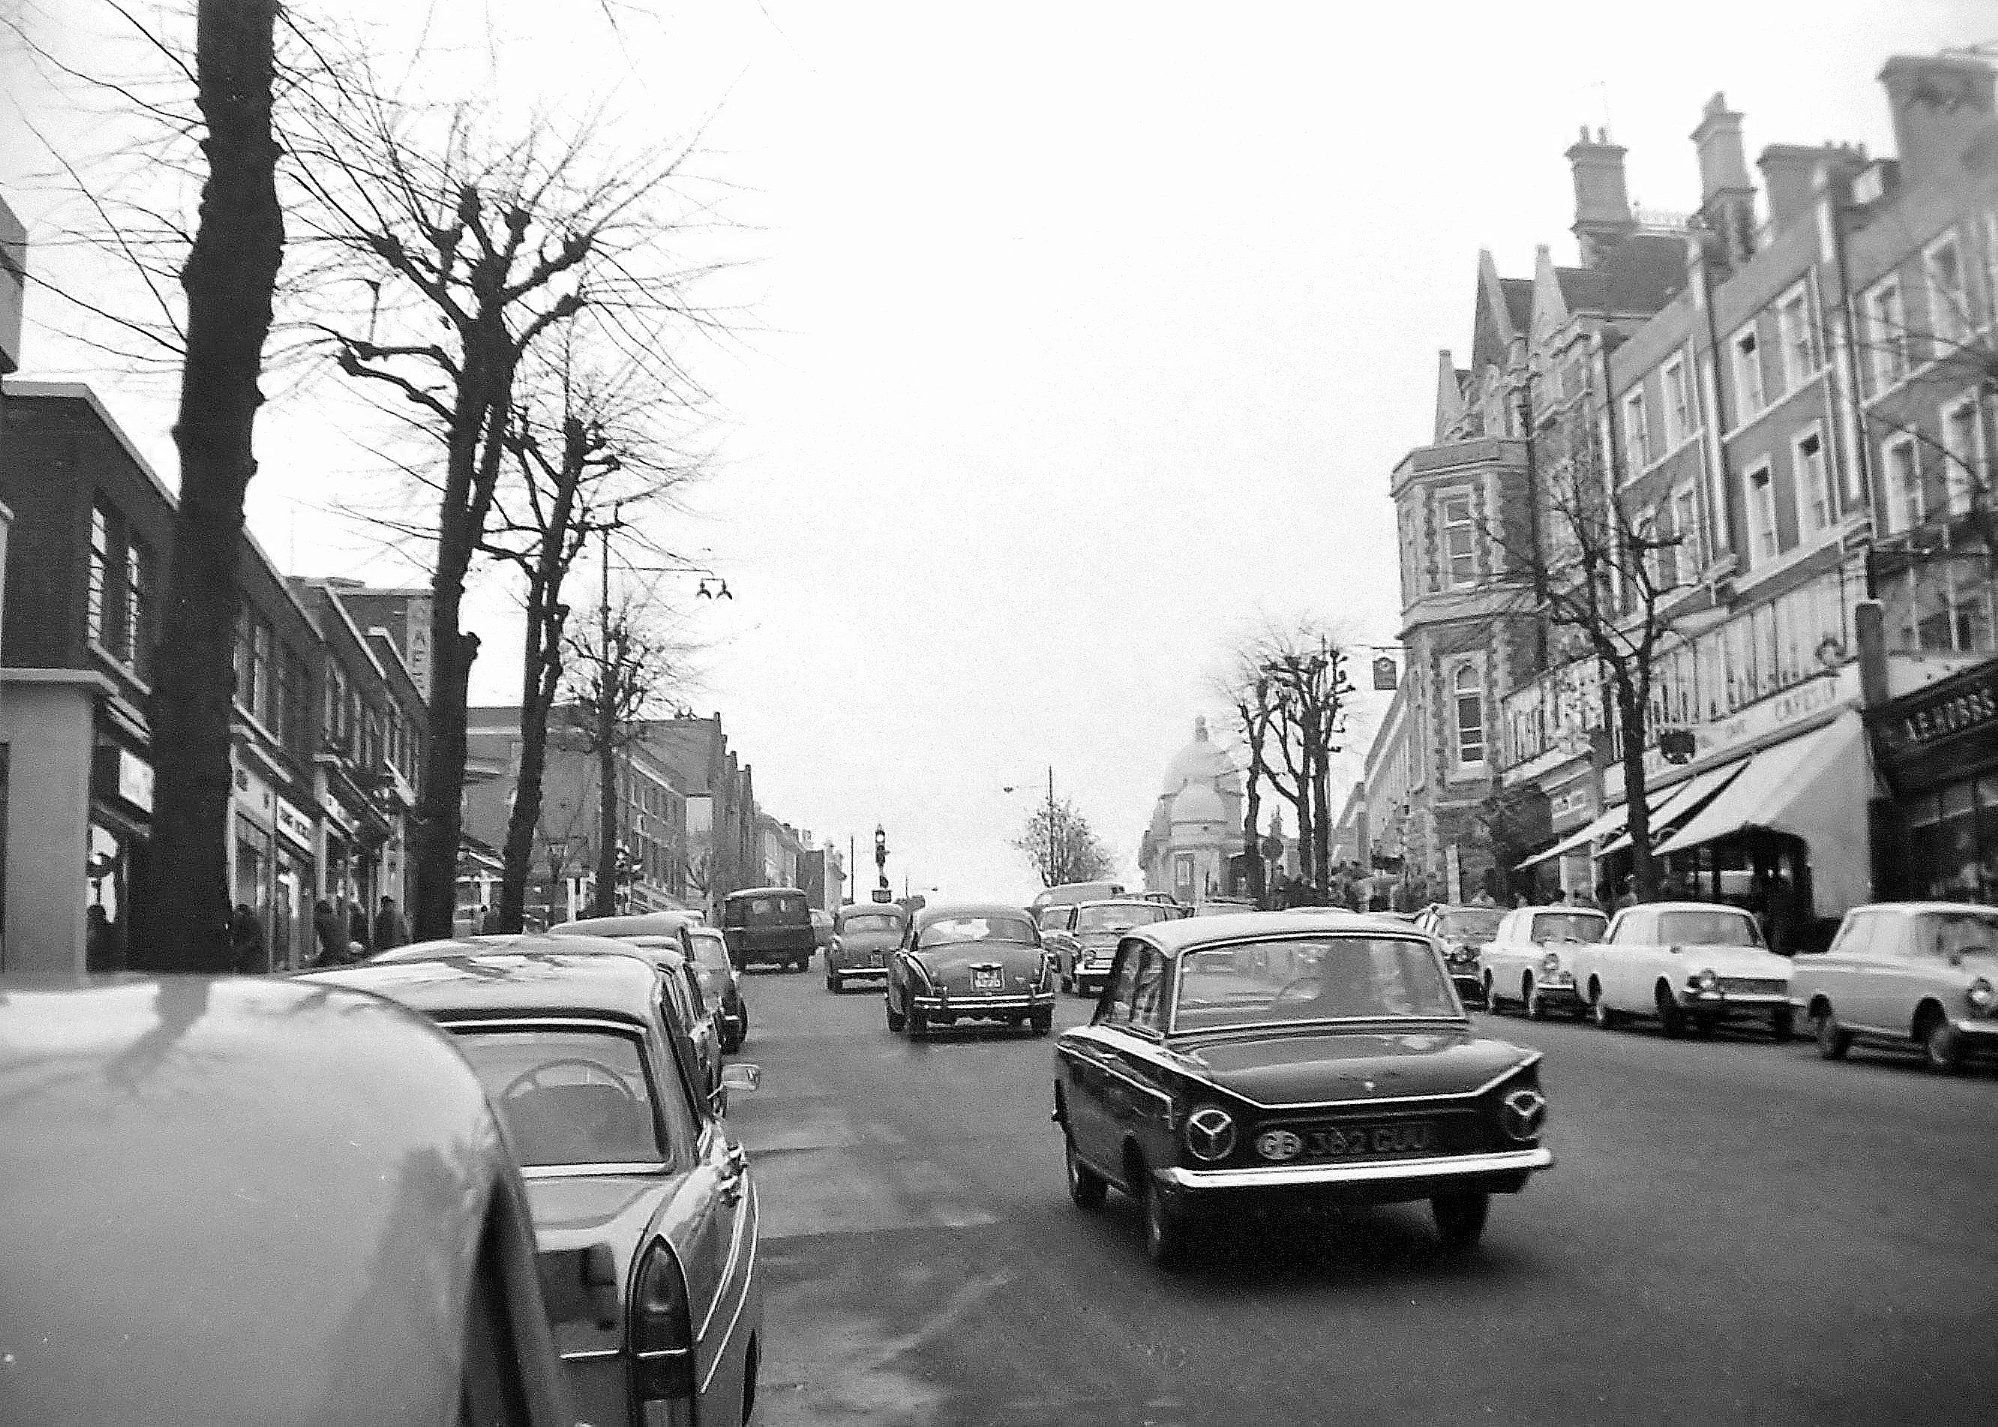 Looking up mount pleasant late 1960s photo originally